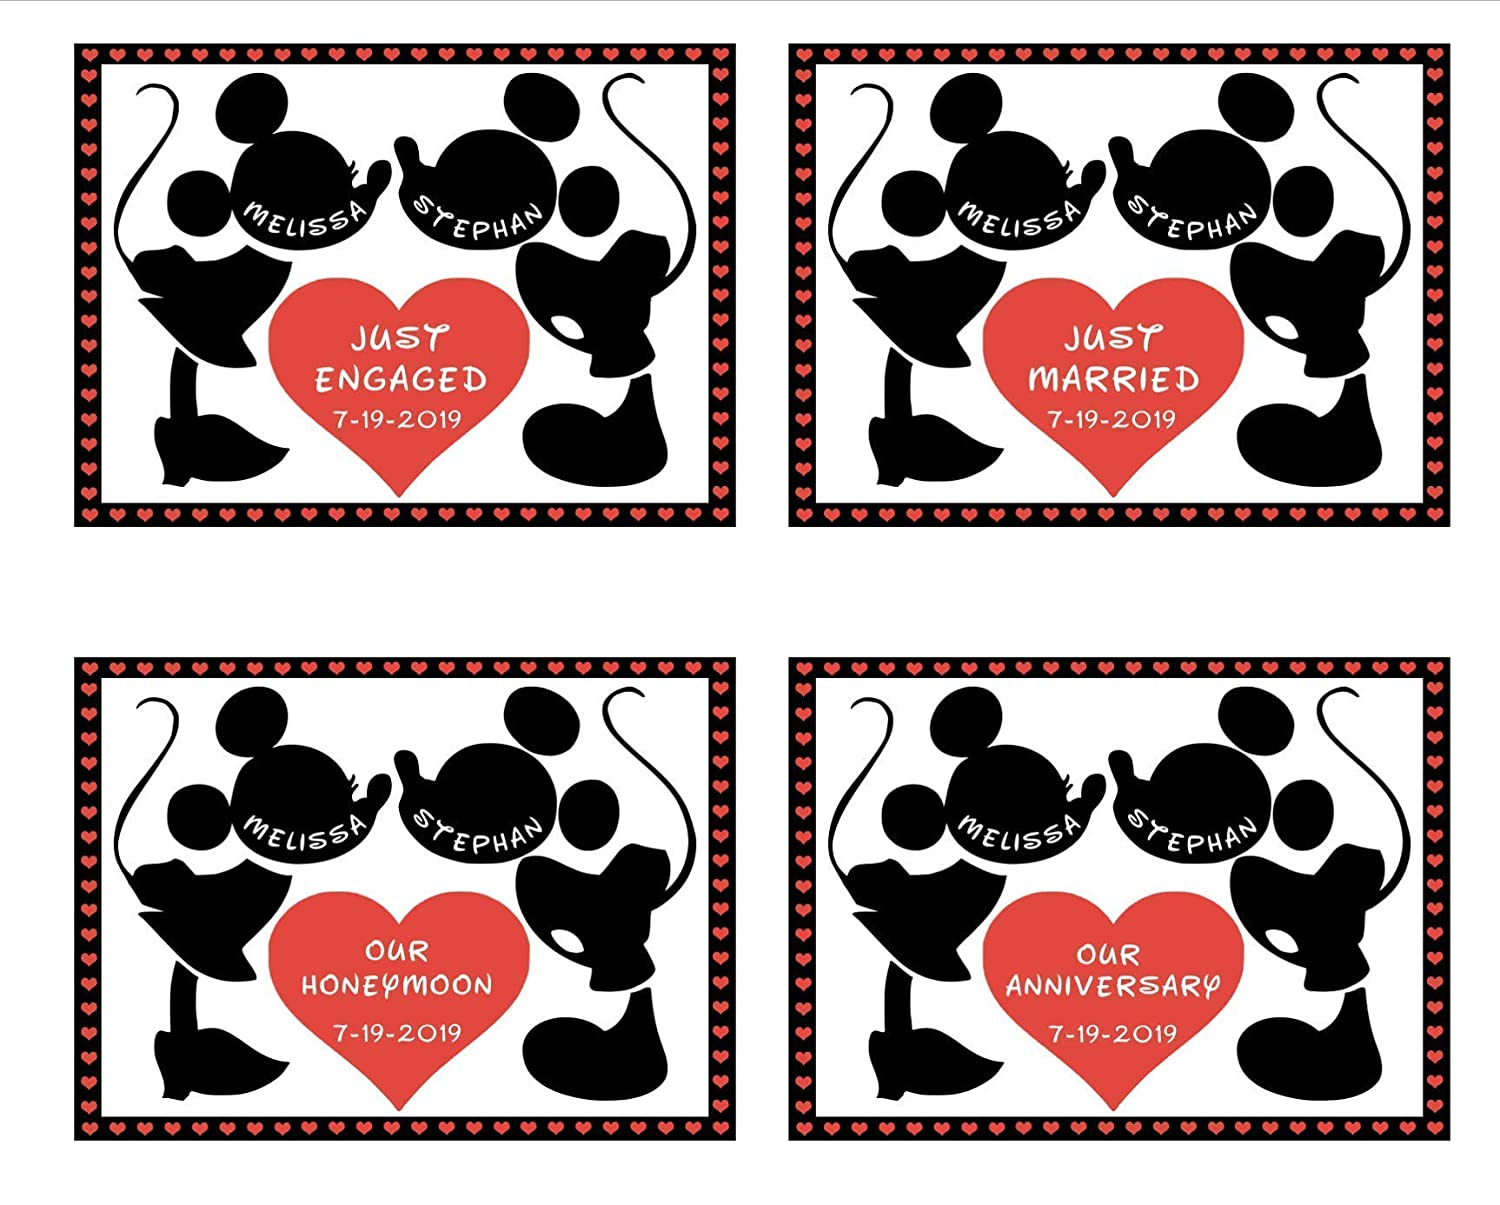 FREE Shipping Our Honeymoon Stateroom Door Magnet Just Engaged Disney Cruise Magnet LARGE Personalized Disney Anniversary Door Magnet Just Married Magnet